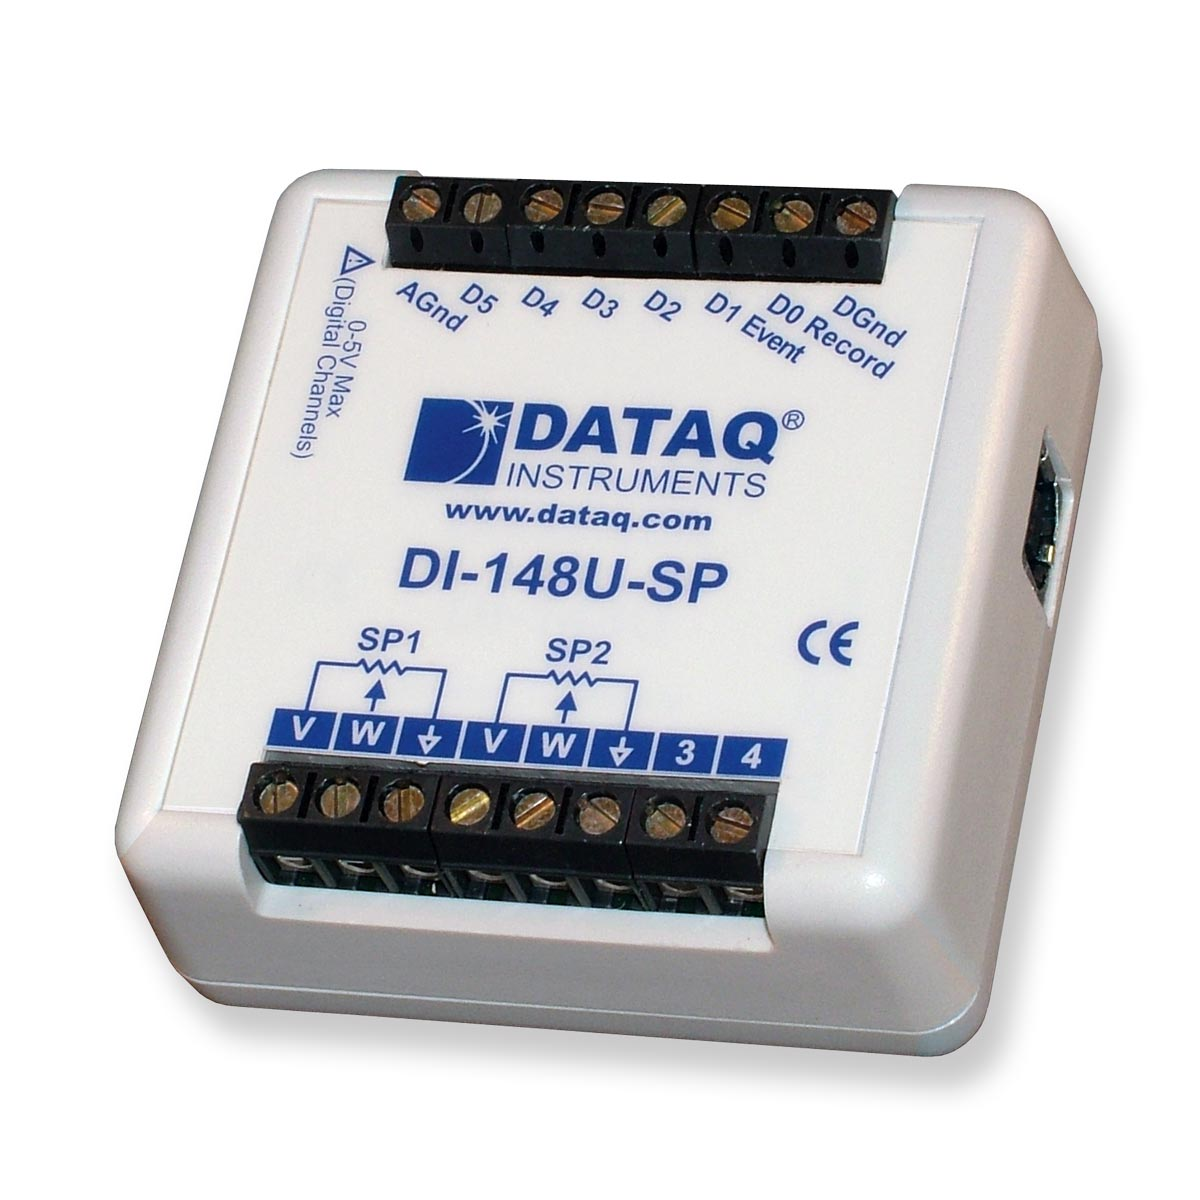 DI-148U-SP Data Acquisition Starter Kit